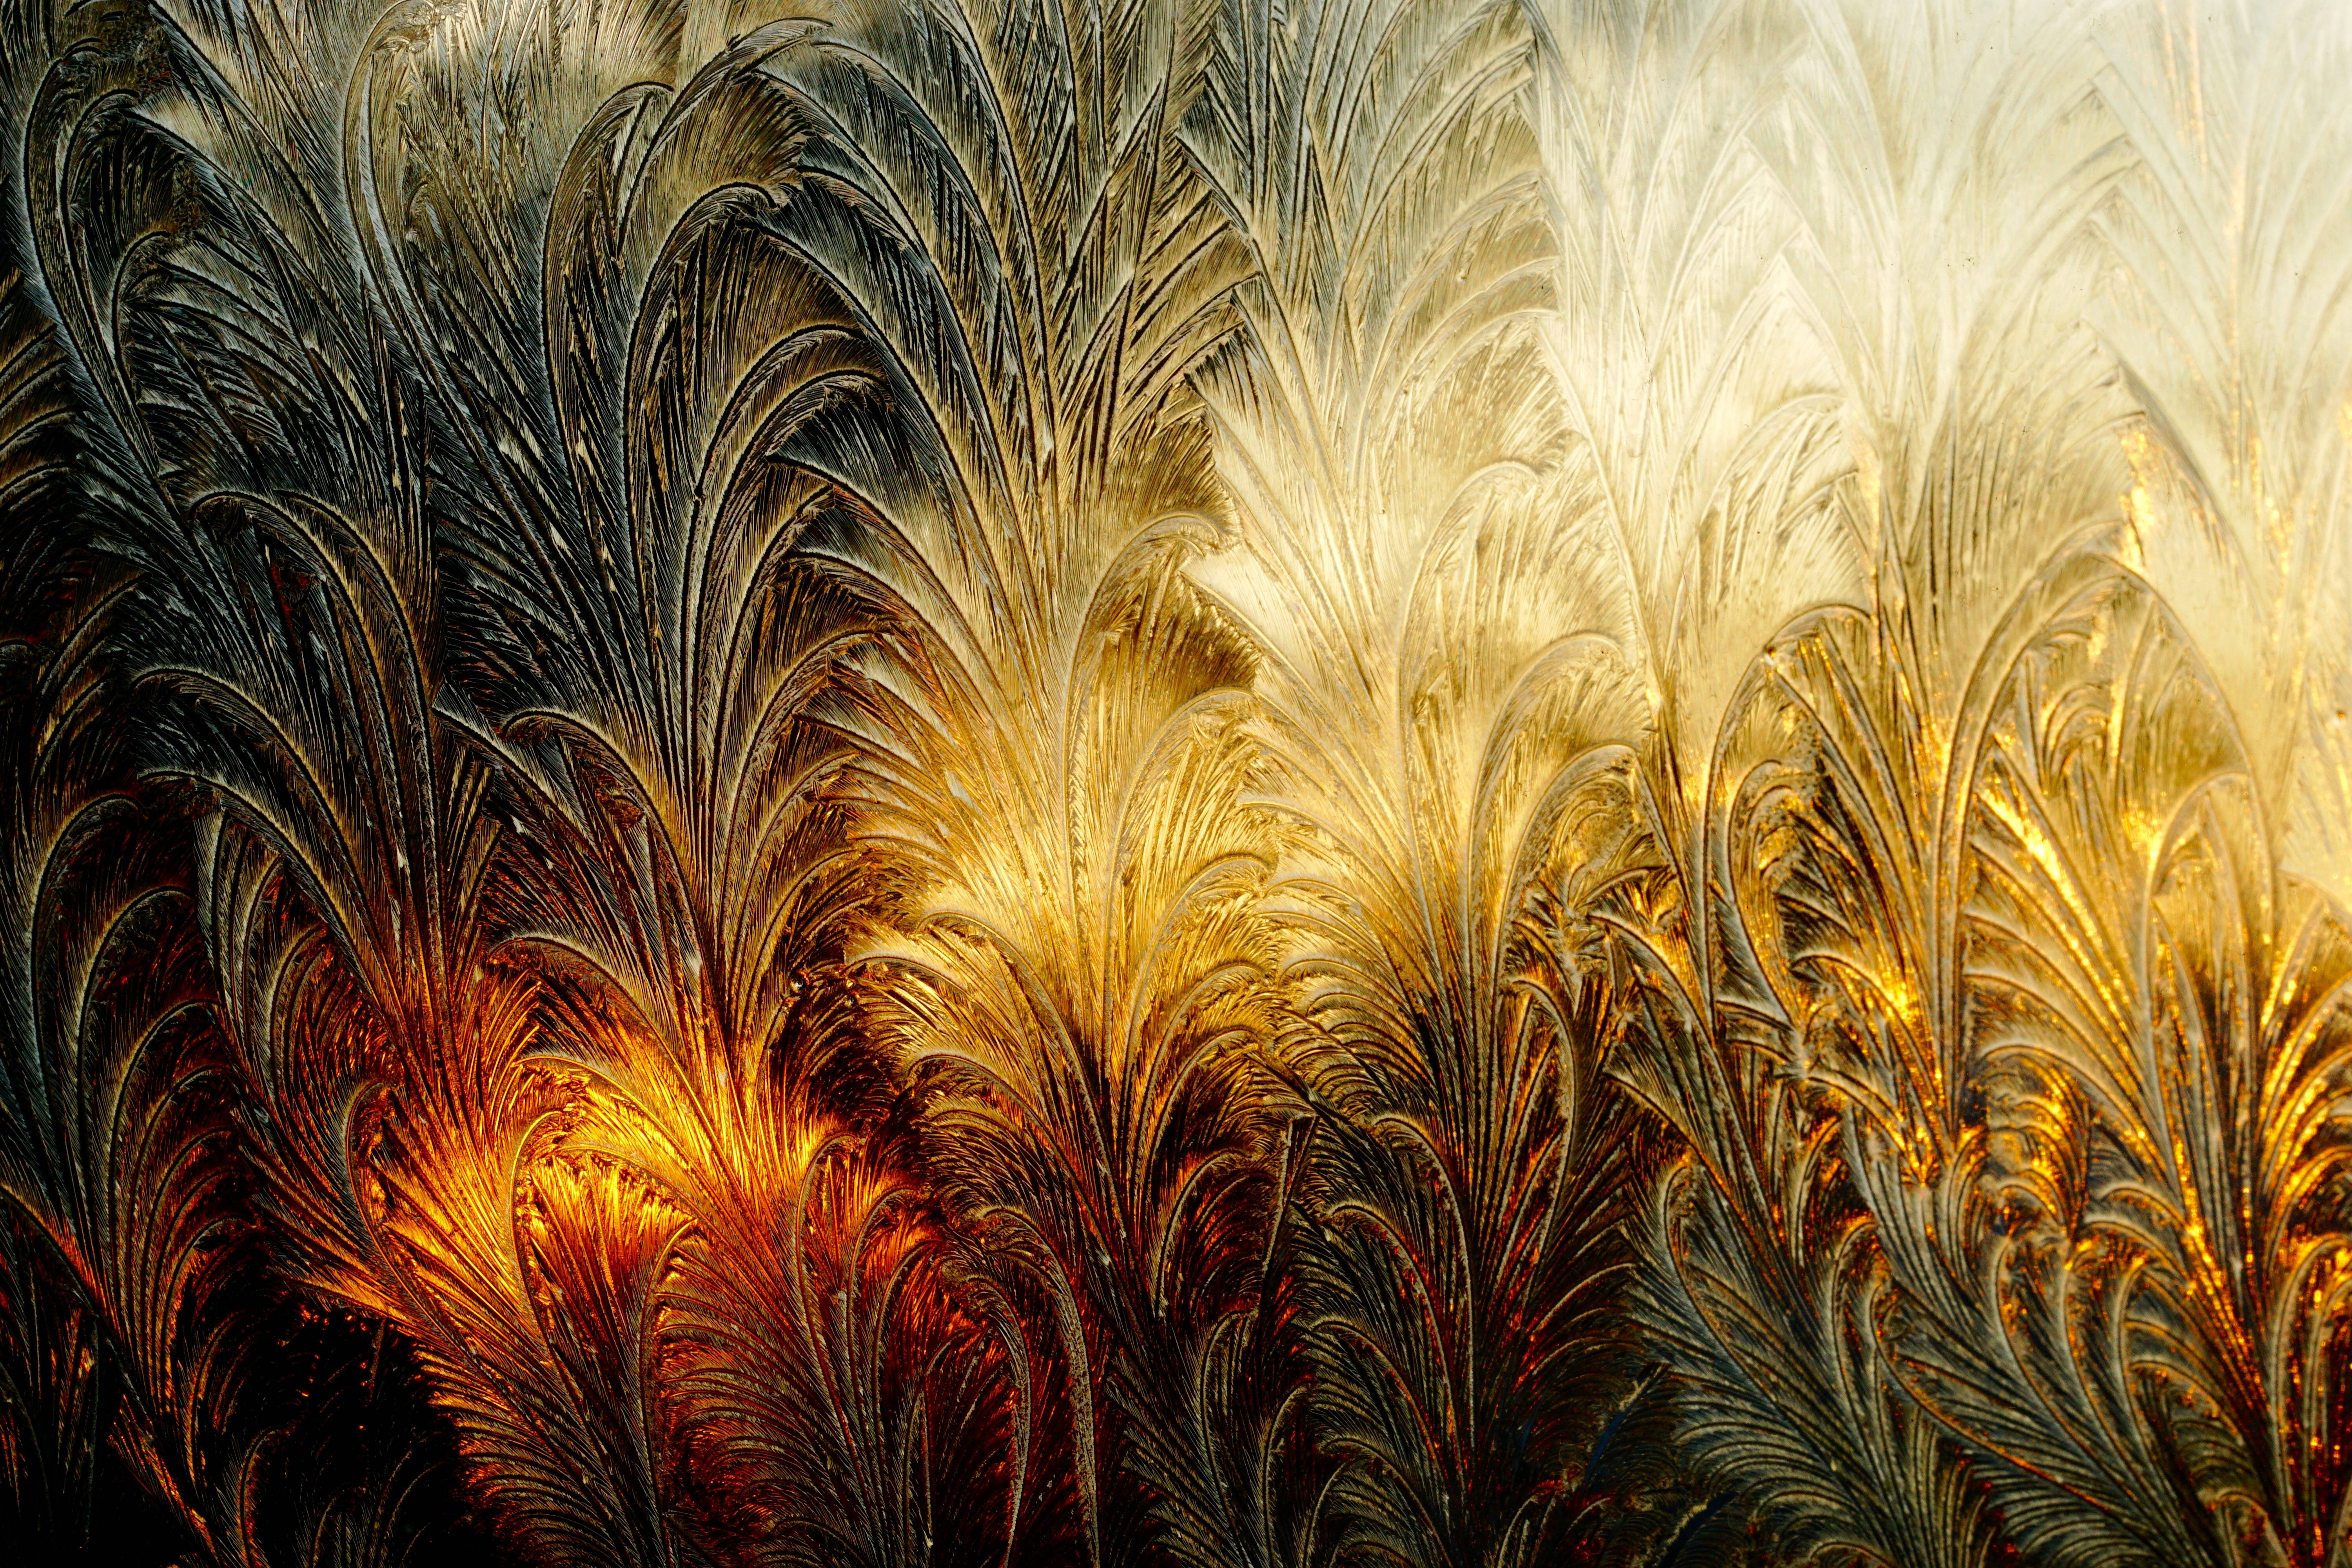 This is a photograph of frost patterns on our bedroom window backlit by the warm rays of the setting sun. It was taken with a macro lens on the coldest day of this past December, when the temperature dipped below zero. The amazing frost shapes remind my wife of a field of wheat, and I imagine a group of large palms.